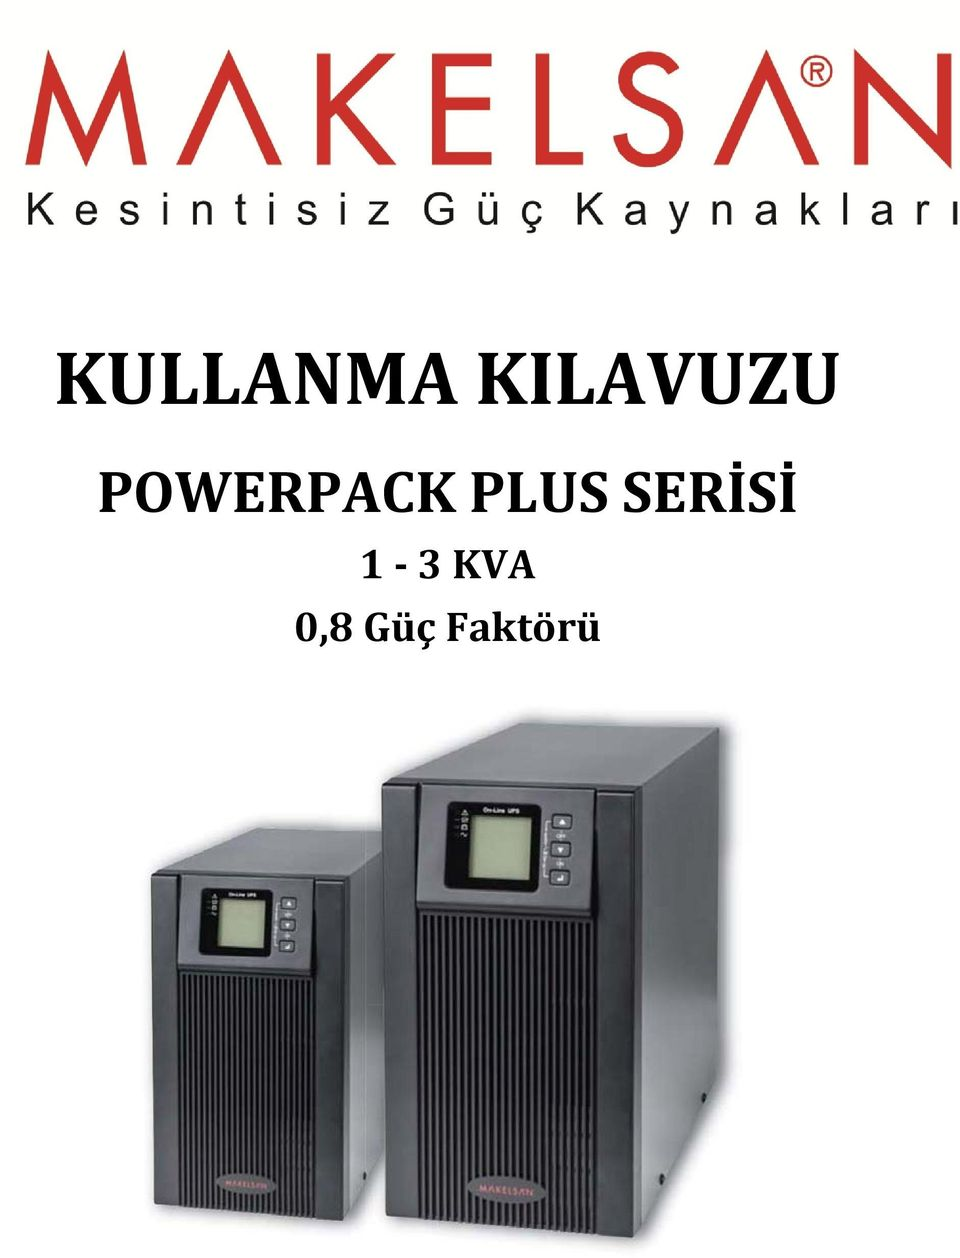 POWERPACK PLUS